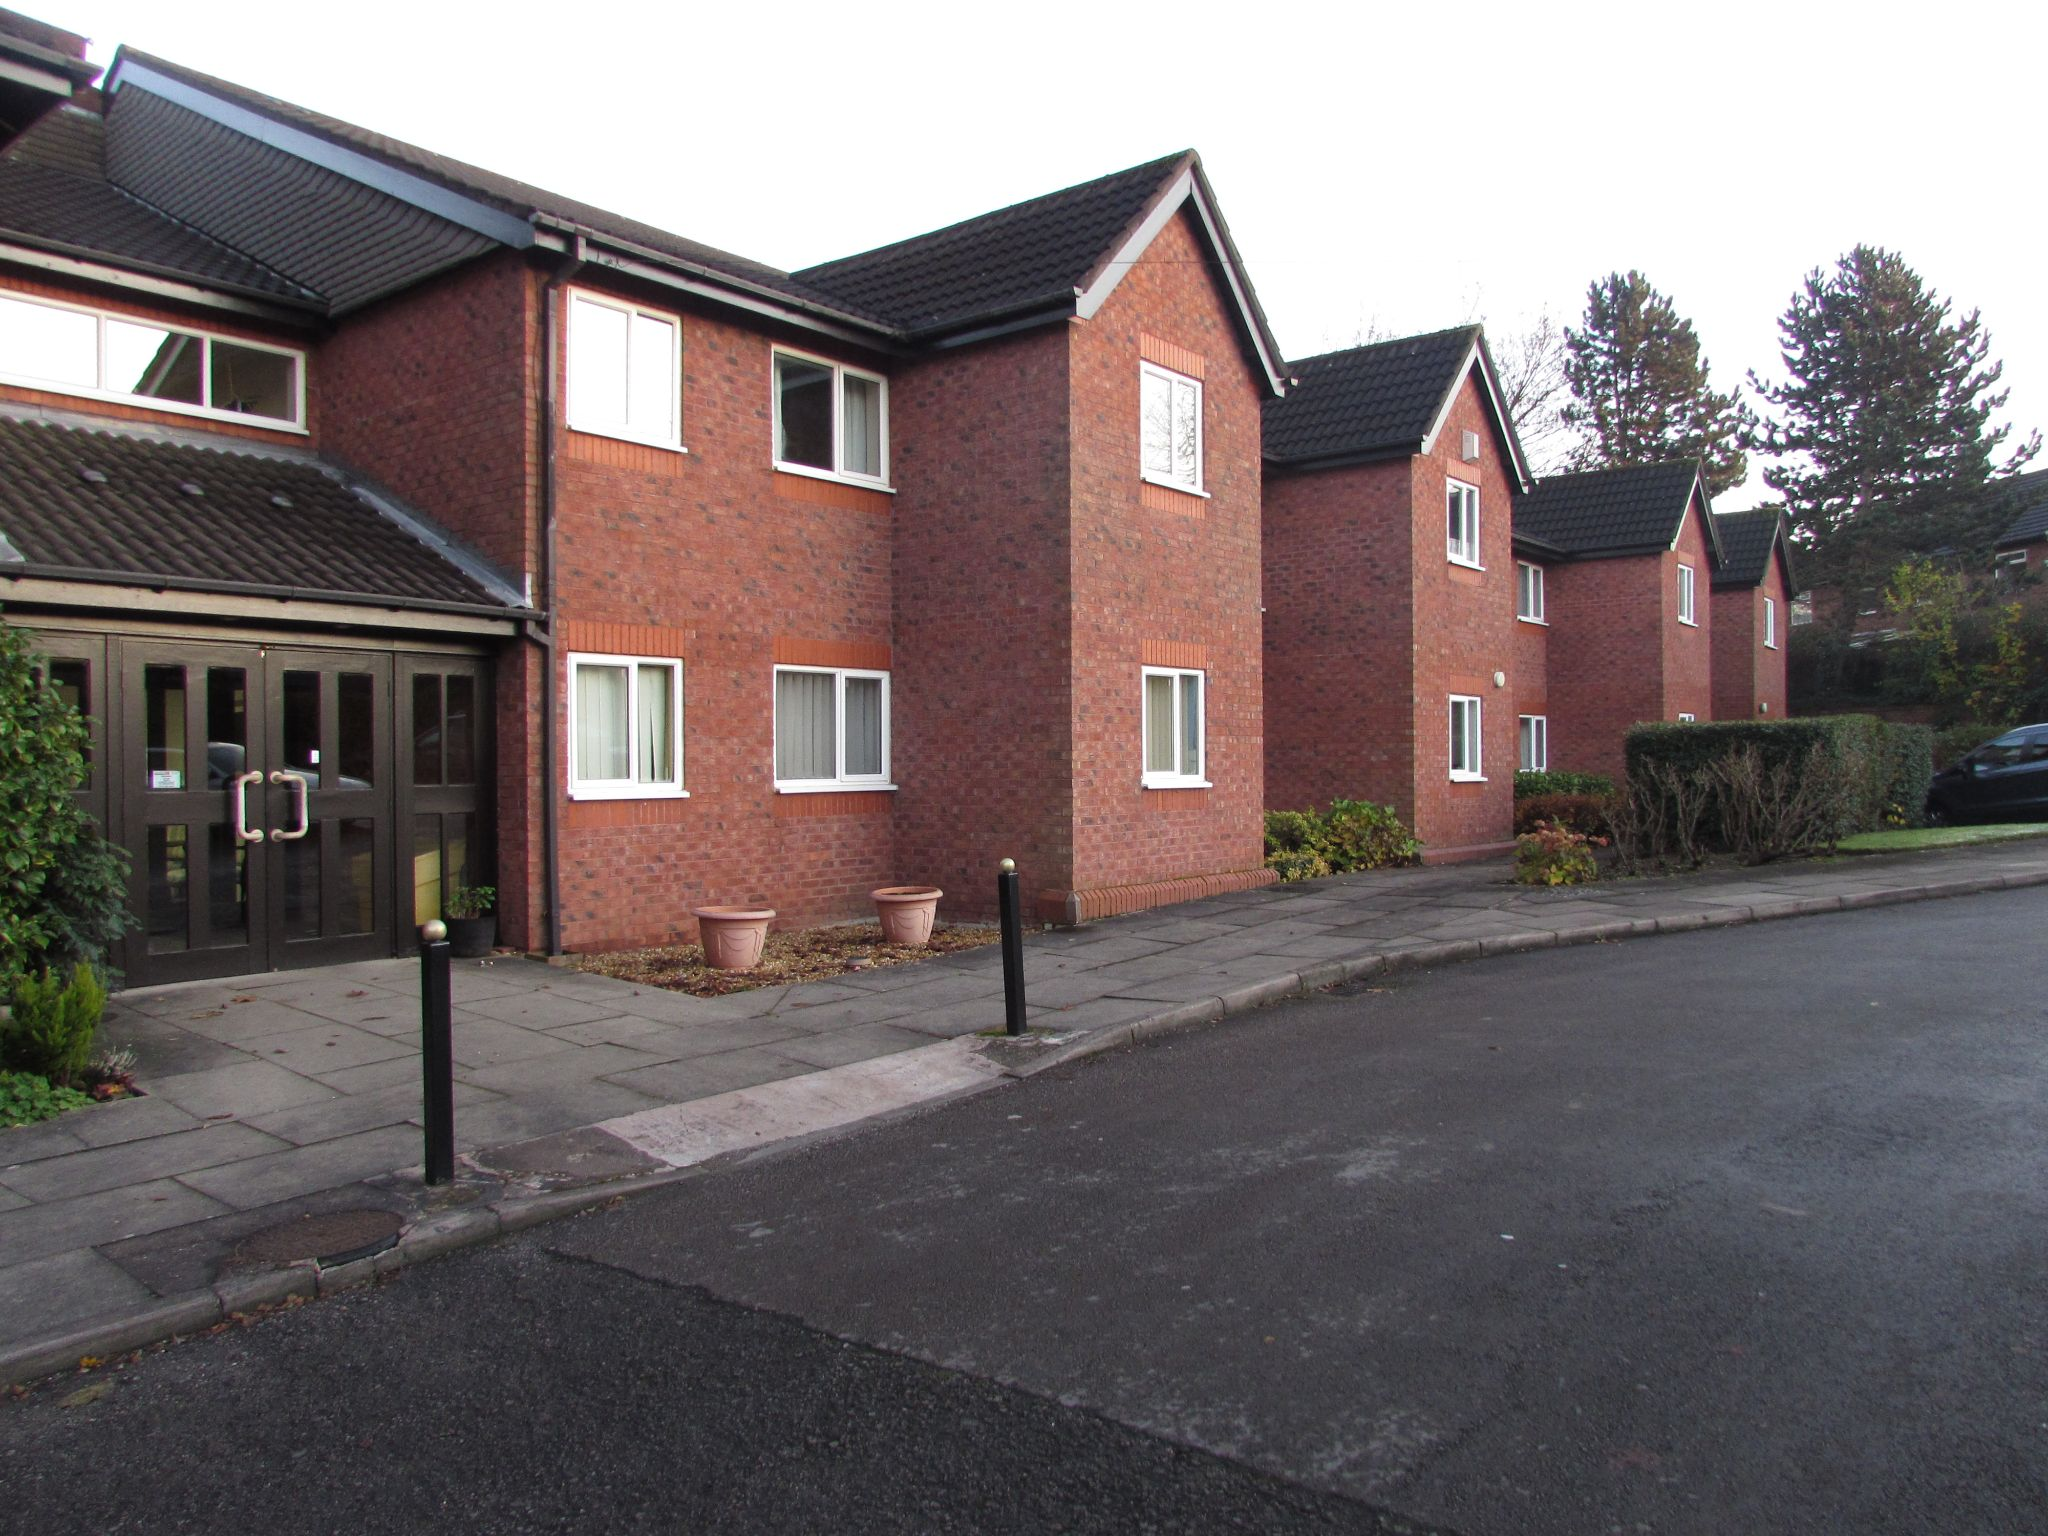 1 Bedroom Ground Floor Flat/apartment For Sale - Photograph 11